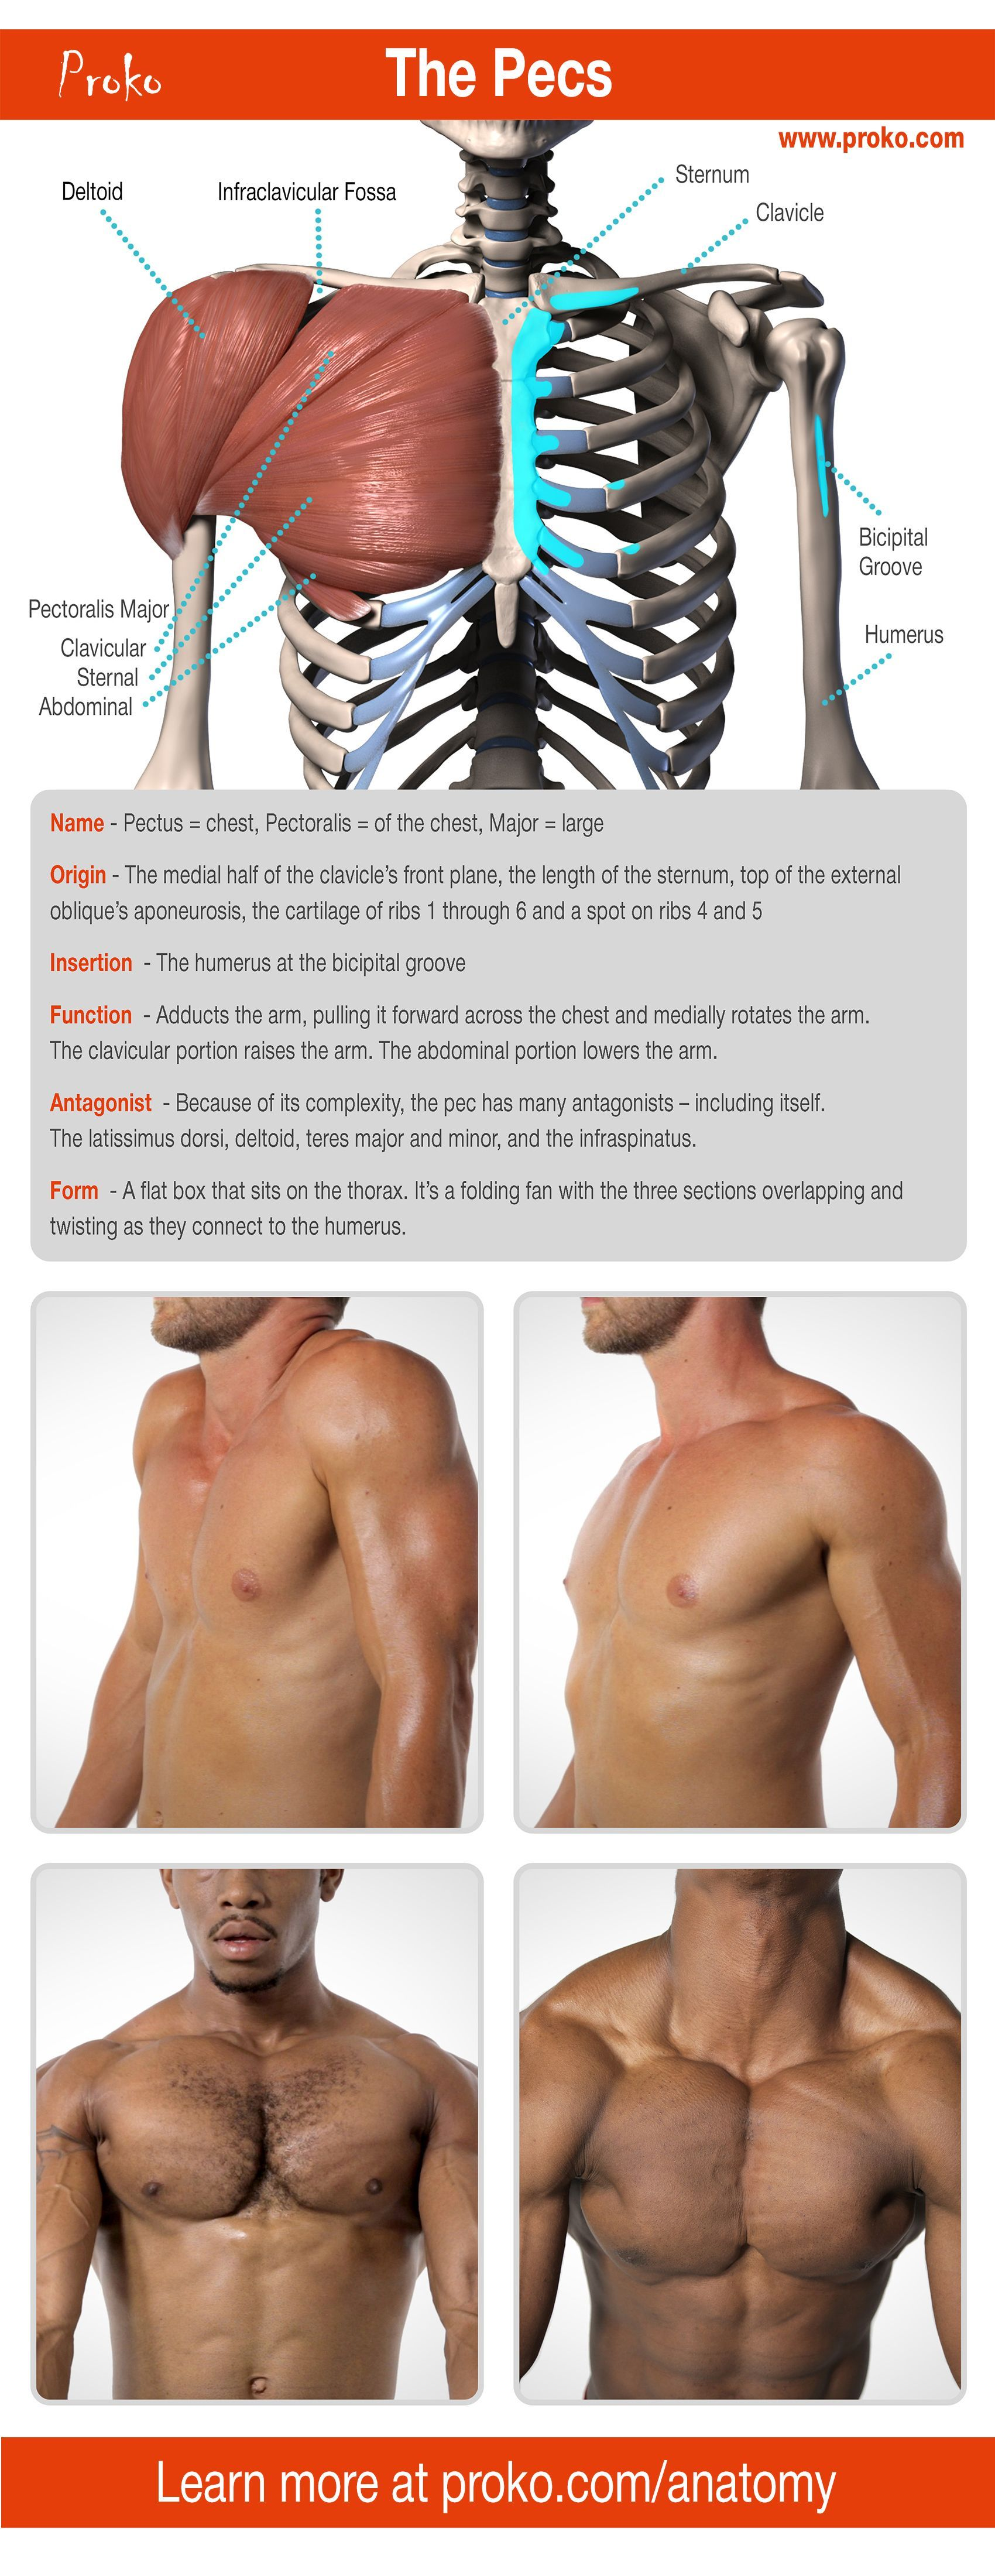 Lets Learn The Anatomy Of The Pecs So That You Can Draw An Accurate